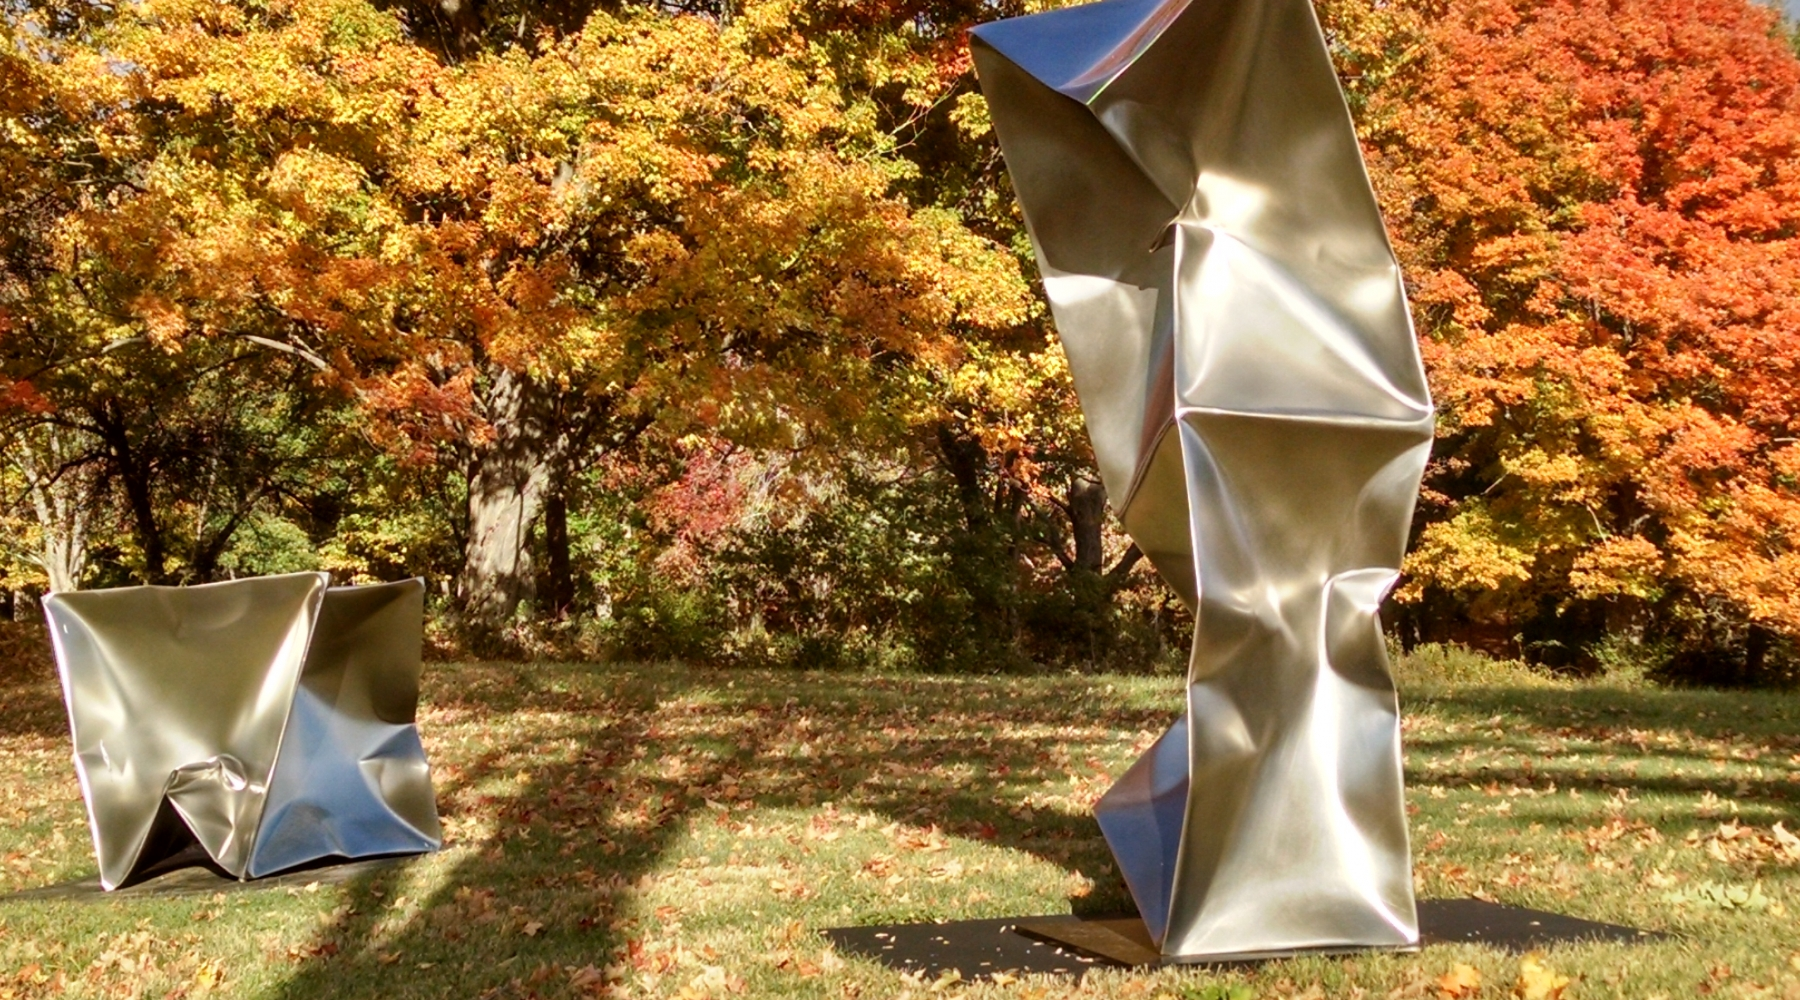 Ewerdt Hilgemann, Imploded Cube and Double NY, 2012-2013, Stainless steel